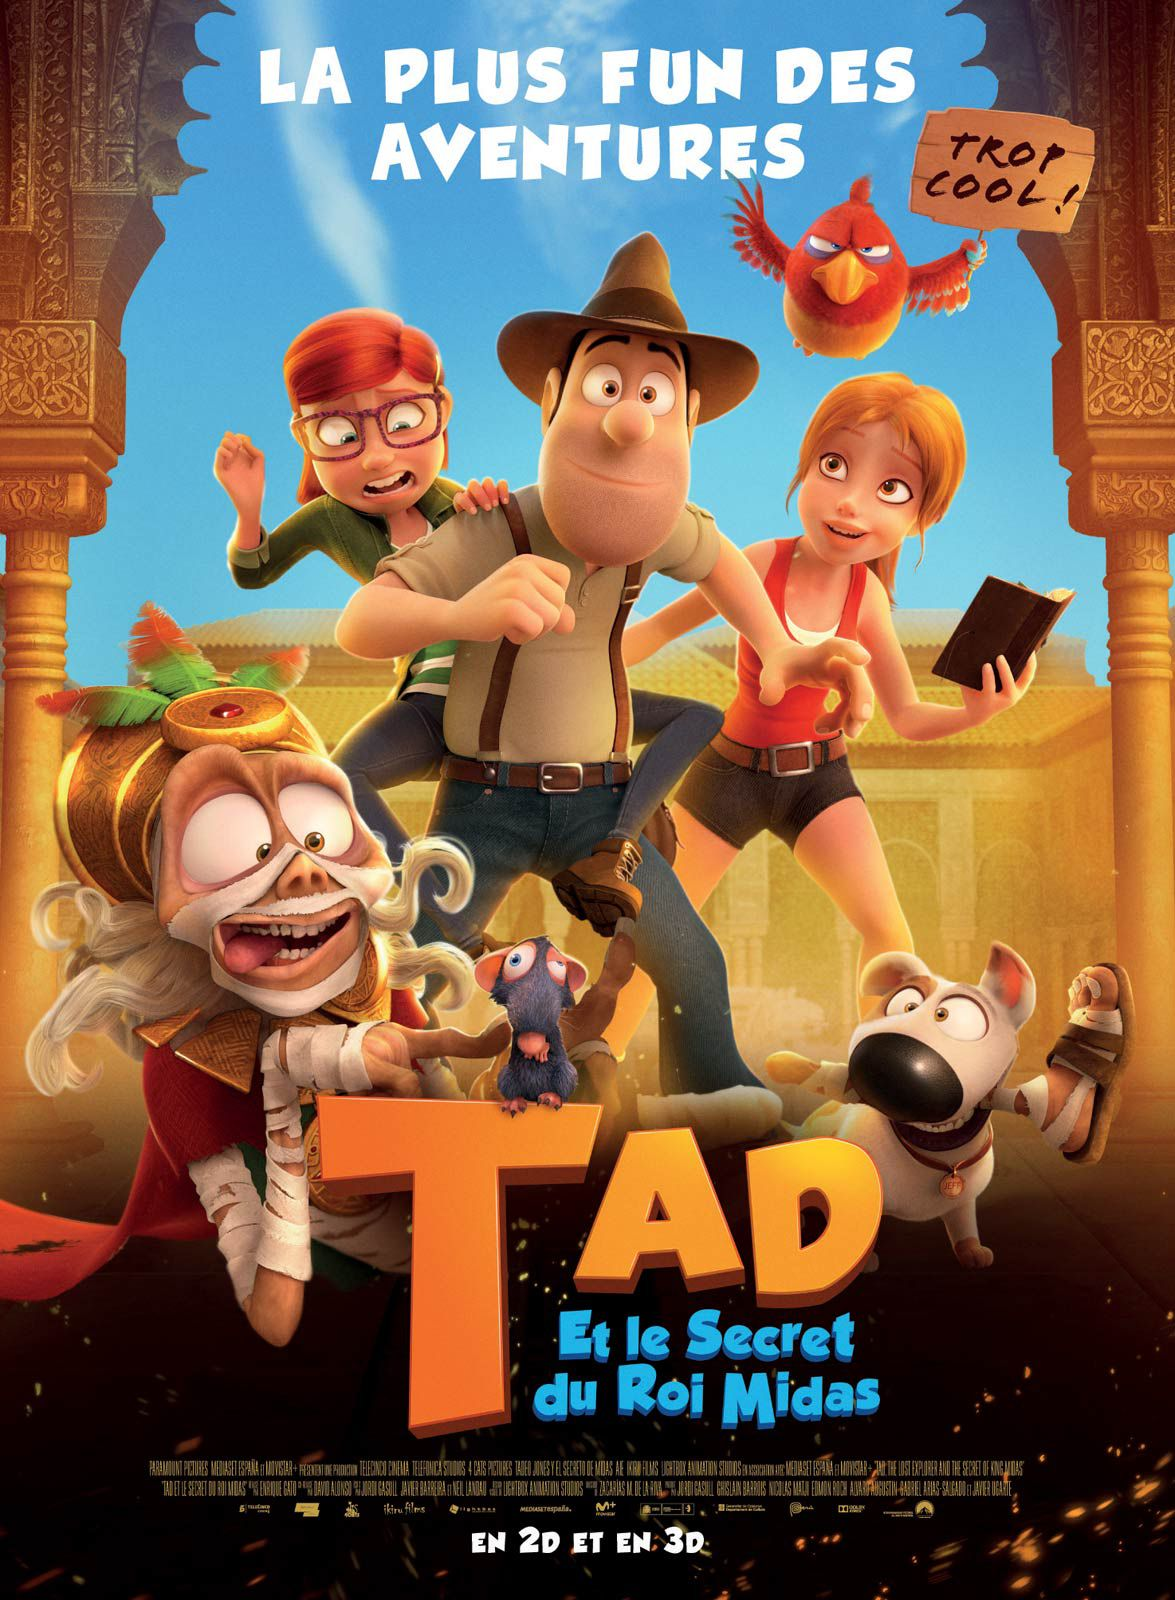 Tad et le secret du roi Midas - Long-métrage d'animation (2018) streaming VF gratuit complet